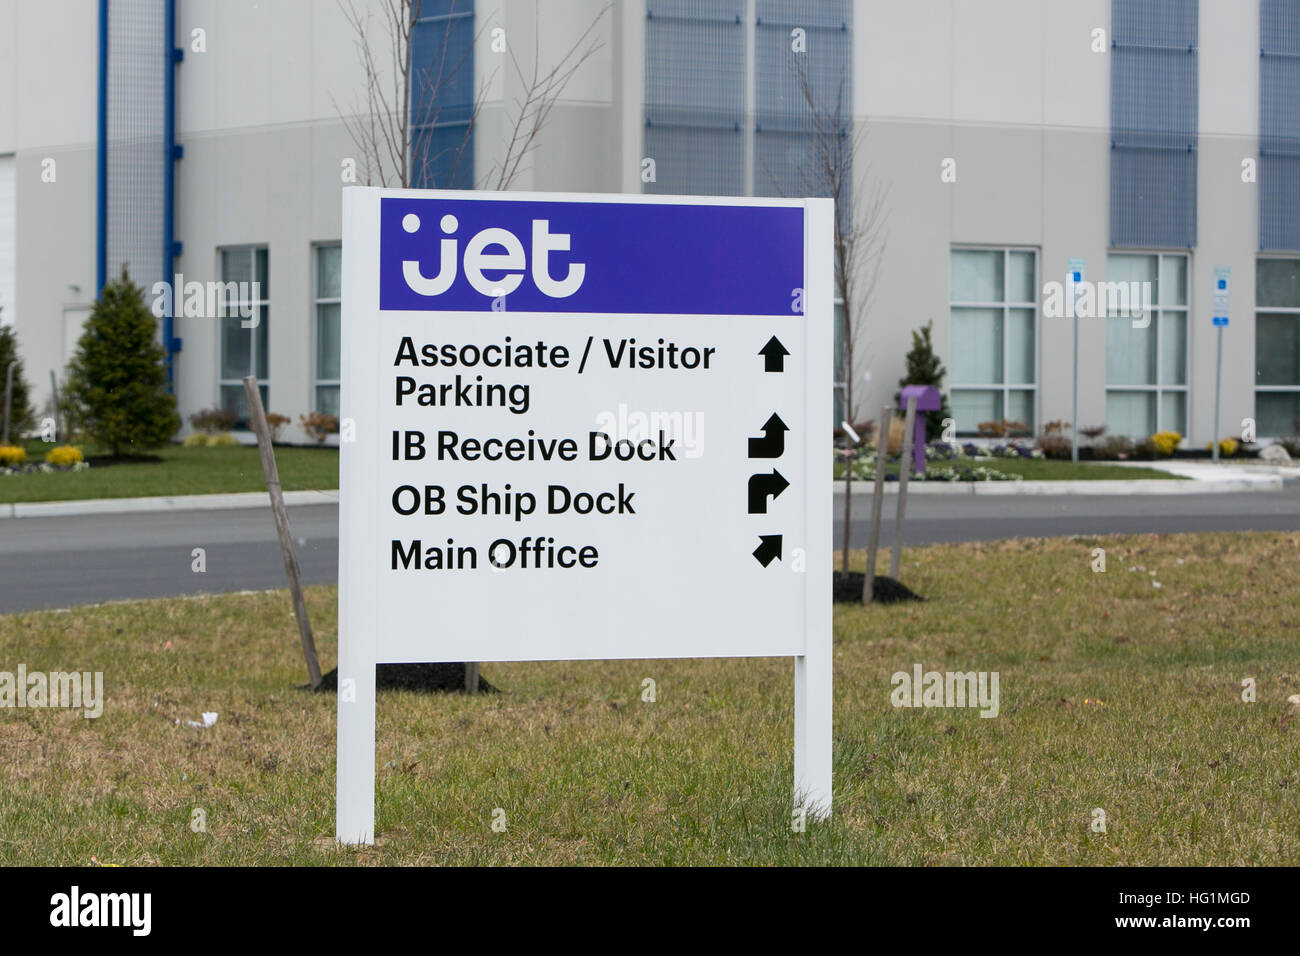 A logo sign outside of a facility occupied by Jet.com in Pedricktown, New Jersey on December 11, 2016. - Stock Image